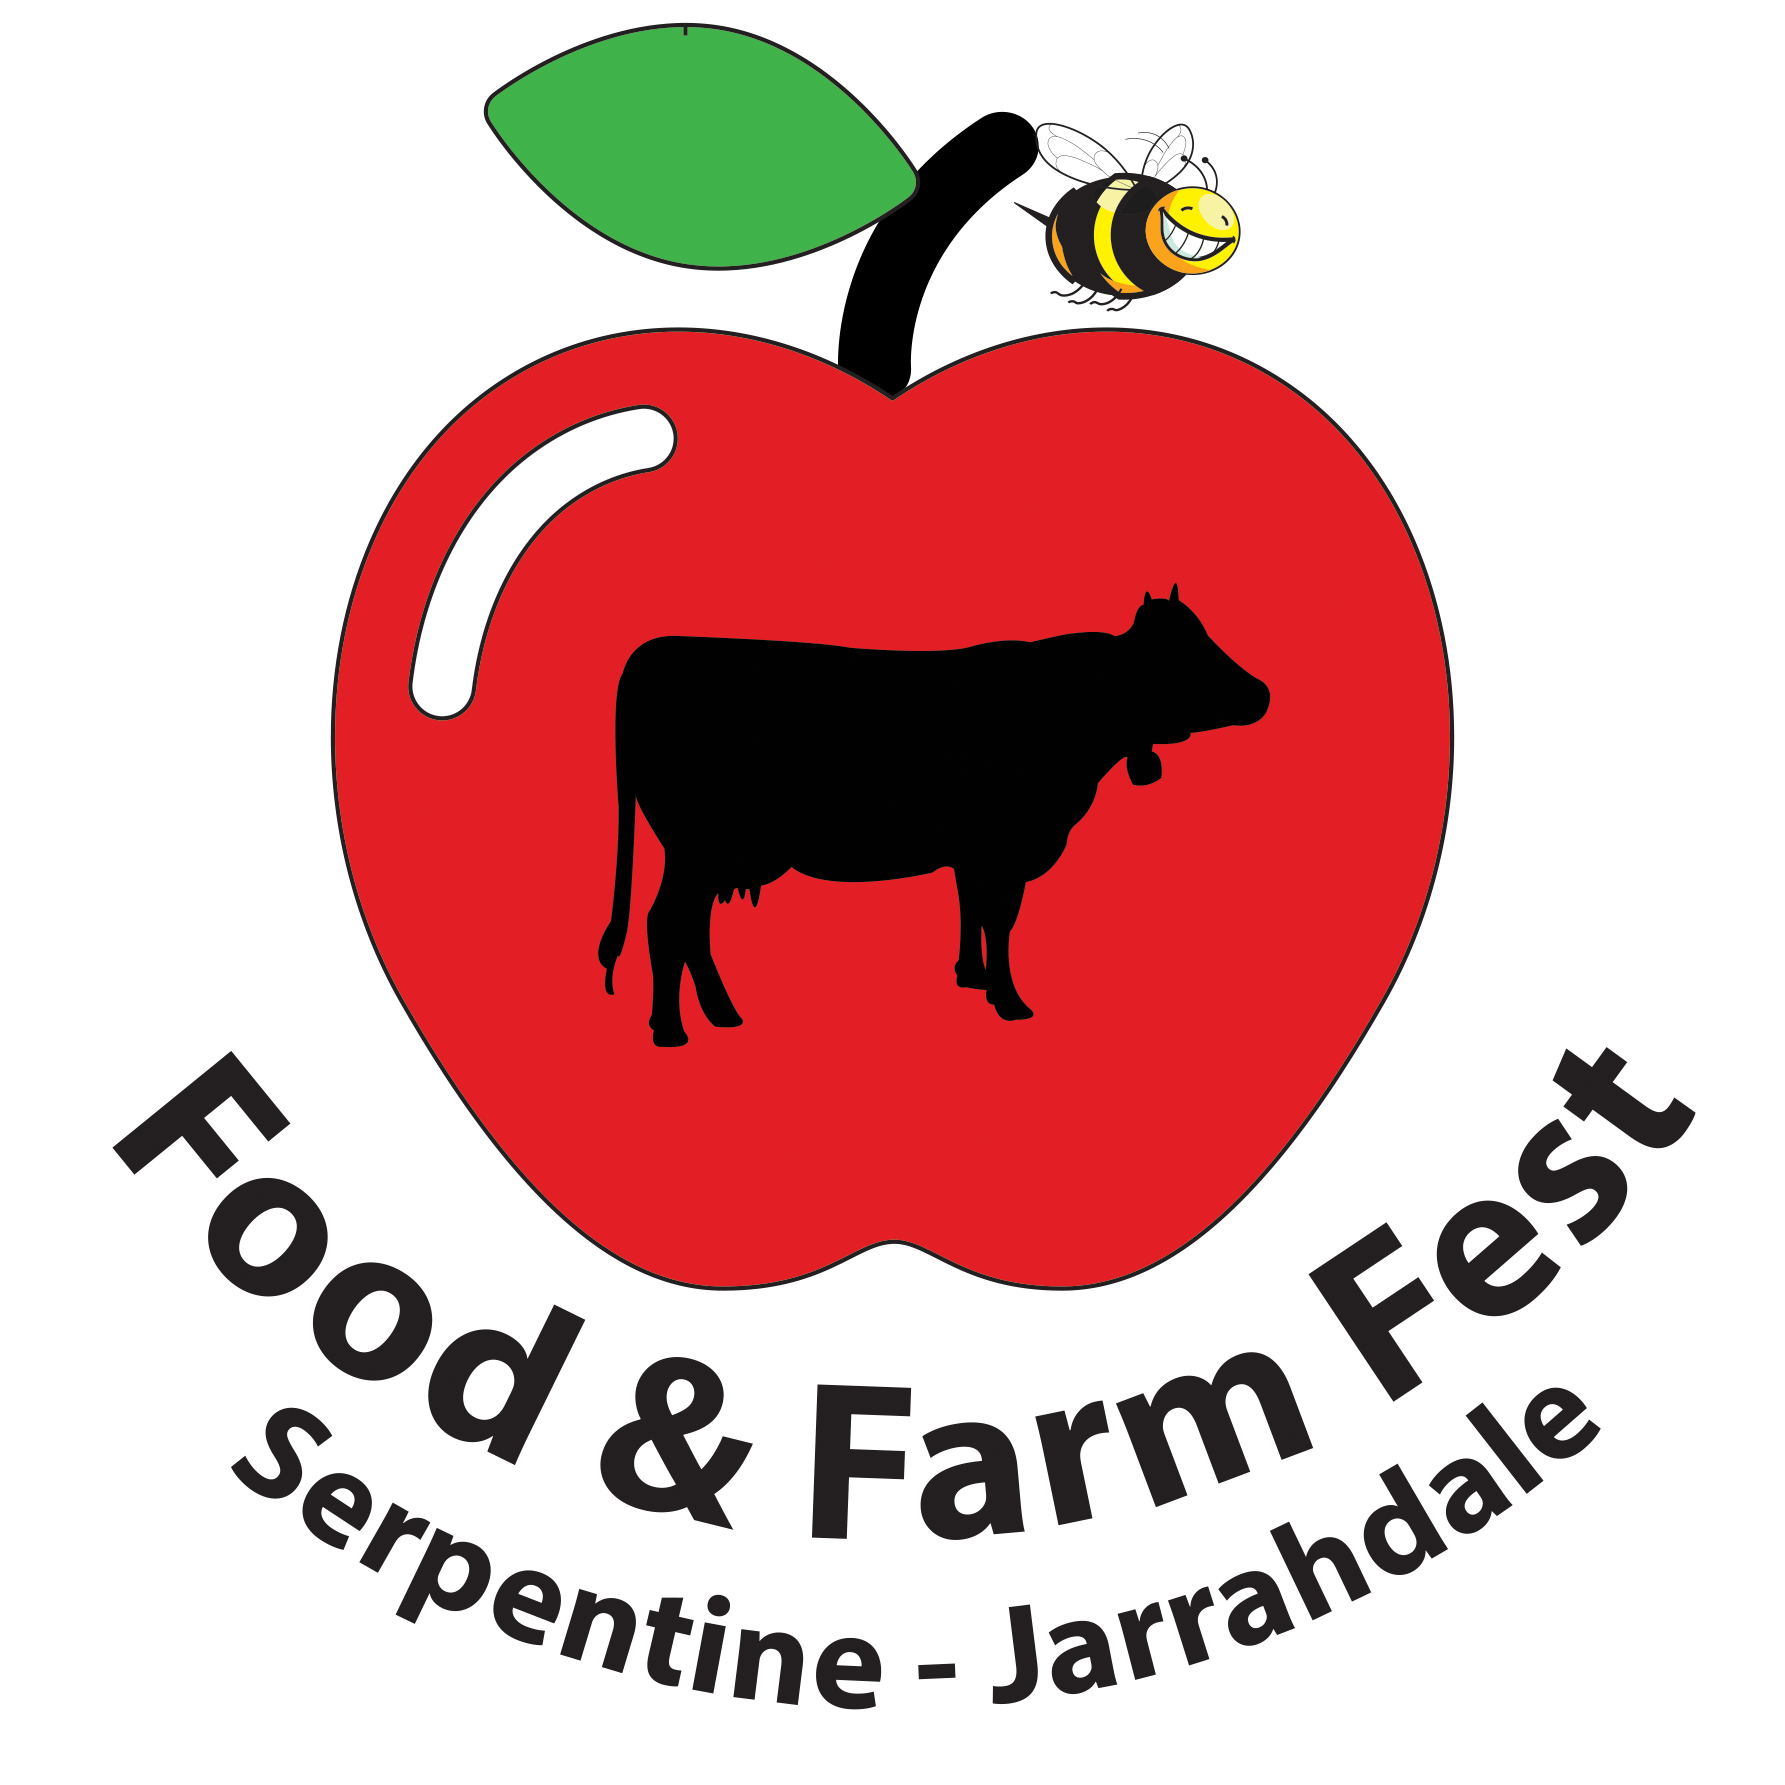 Food and farm fest 2018